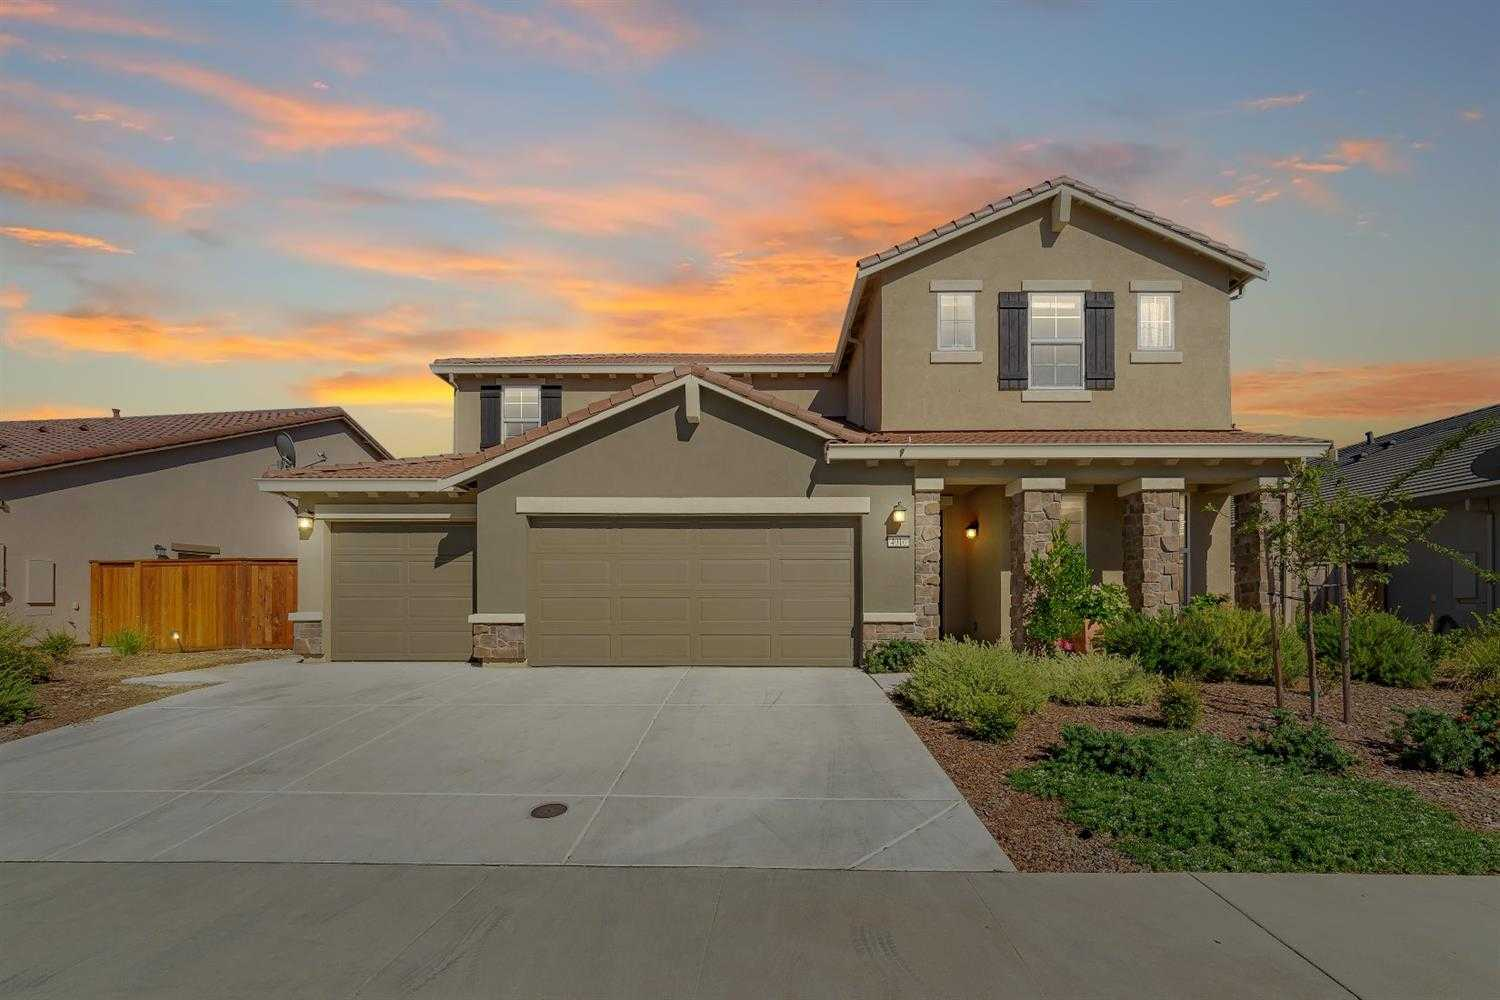 $547,990 - 4Br/3Ba -  for Sale in Primrose At Westpark, Roseville